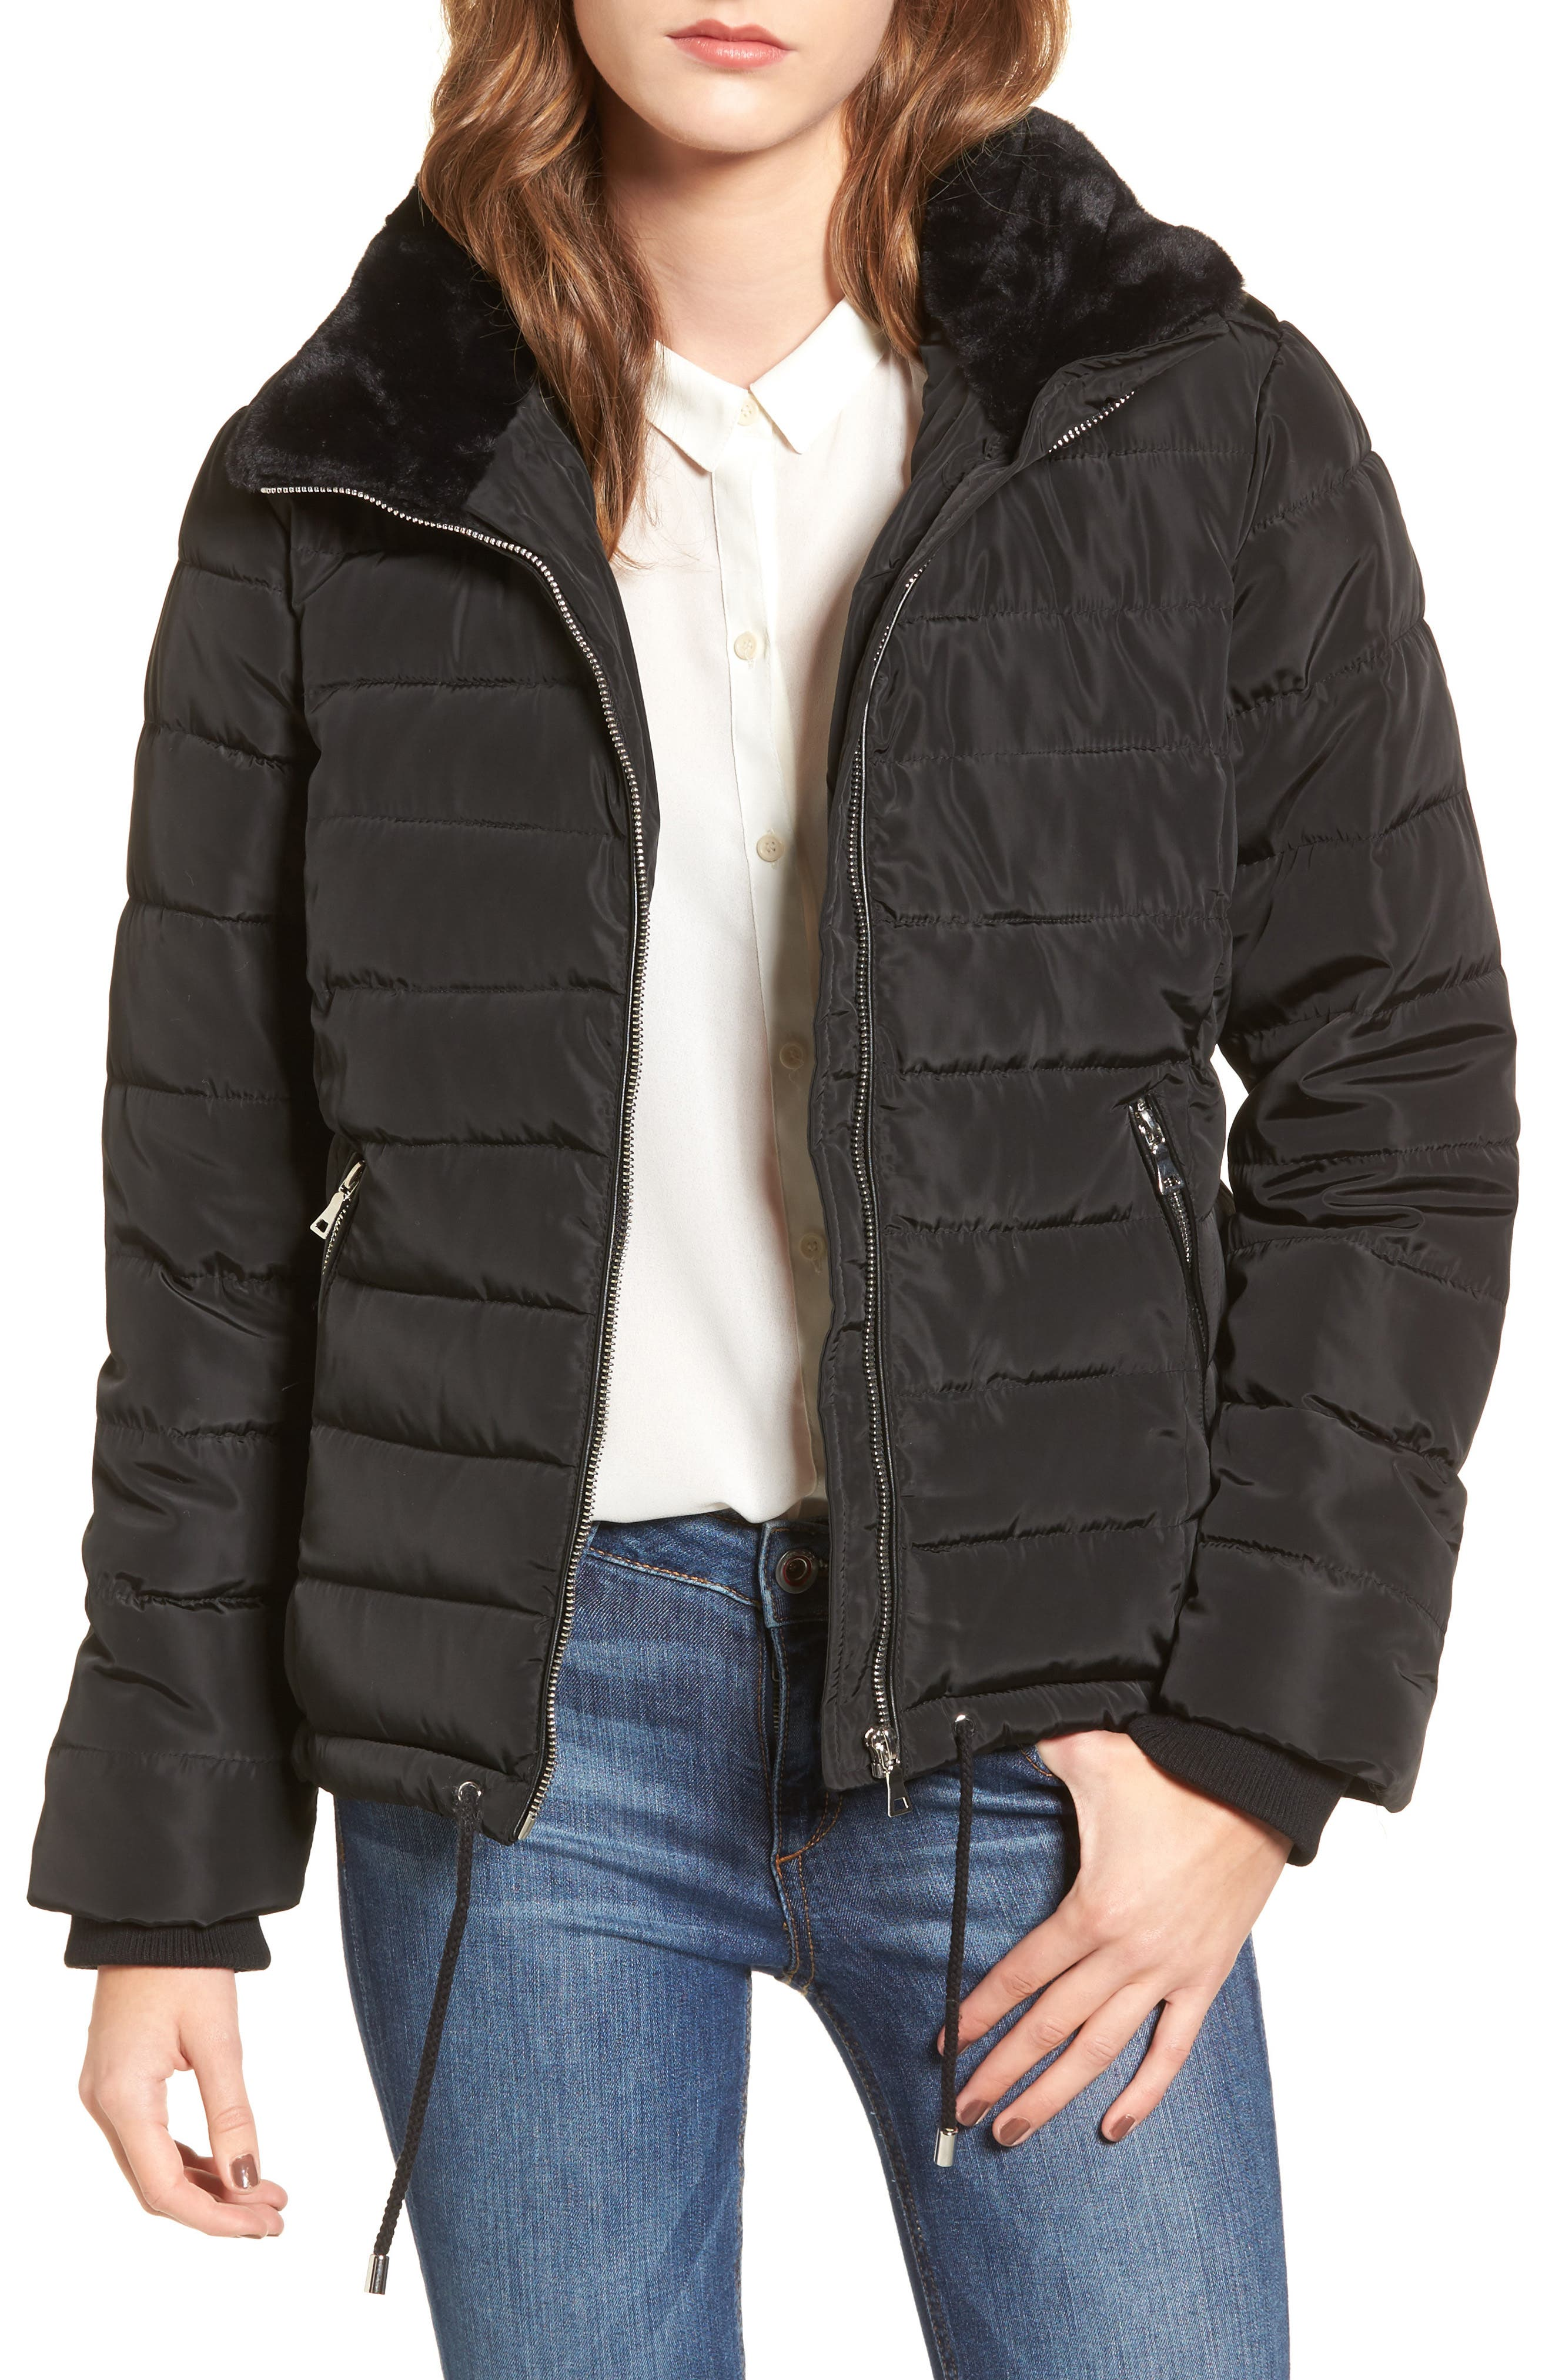 Alternate Image 1 Selected - Dorothy Perkins Puffer Jacket with Faux Fur